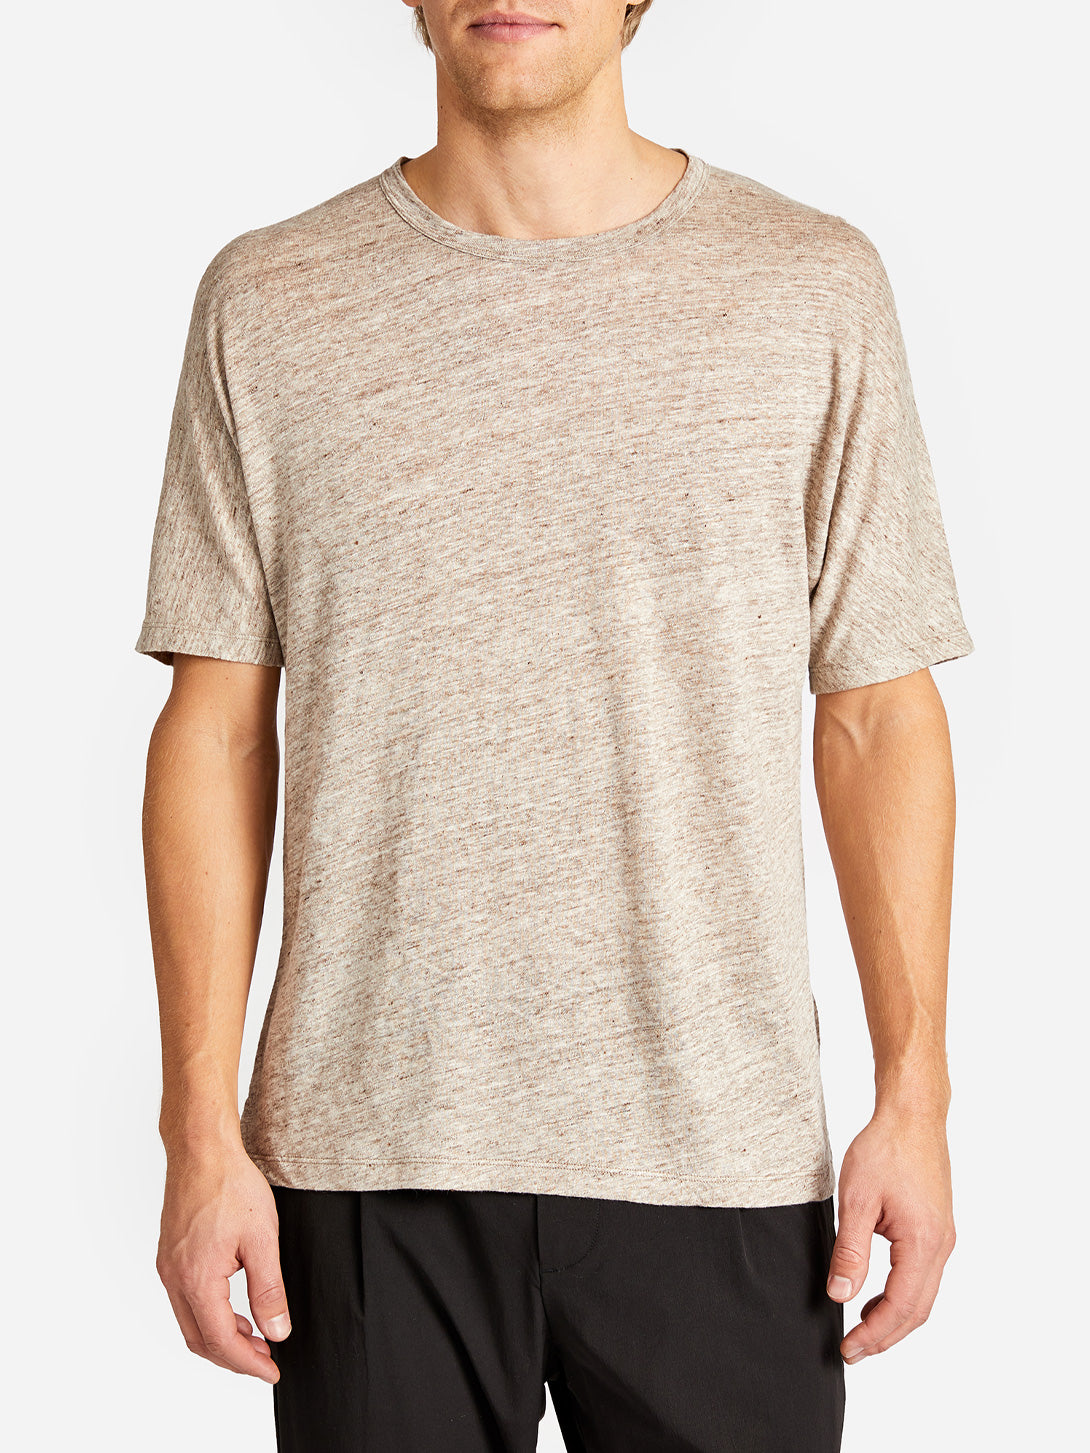 HIGHLAND DOLMAN LINEN TEE SAND HEATHER GREY LABEL